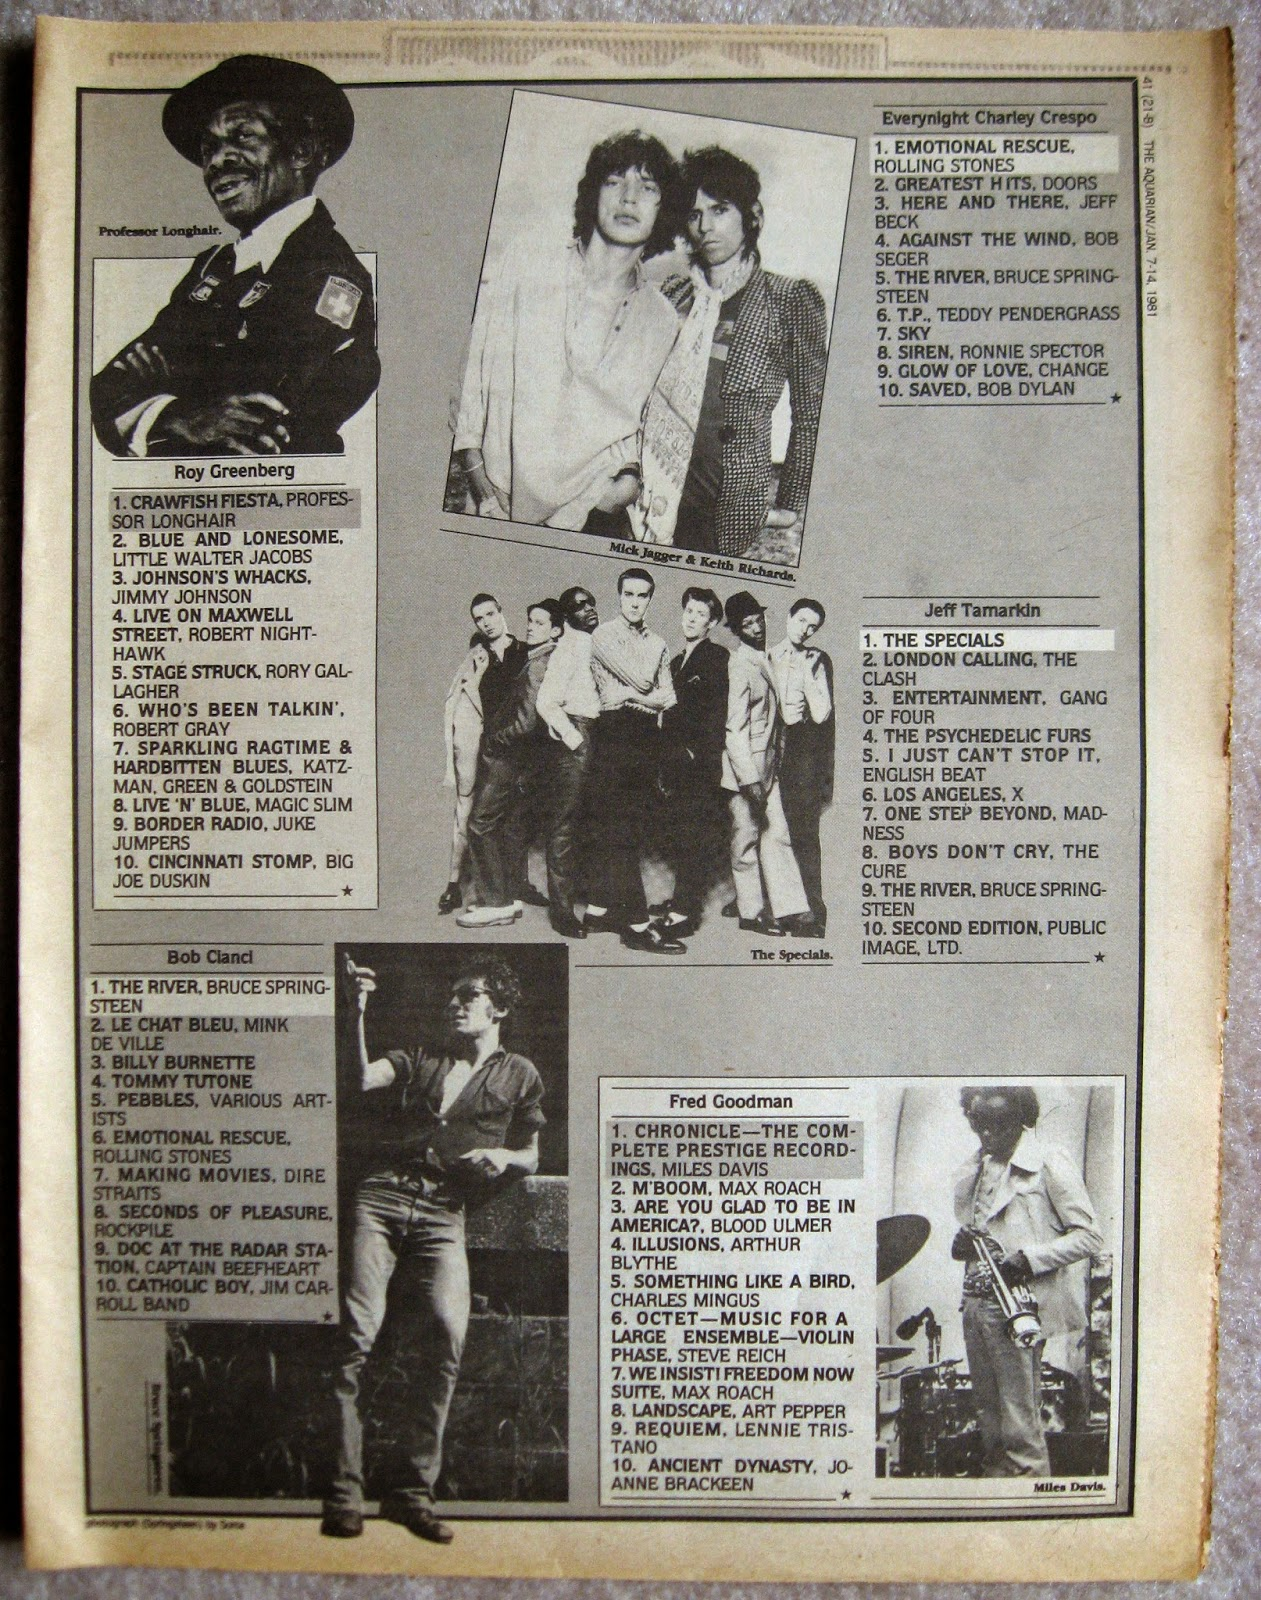 1980 top albums of the year... part 2 Aquarian Night Owl January 1981